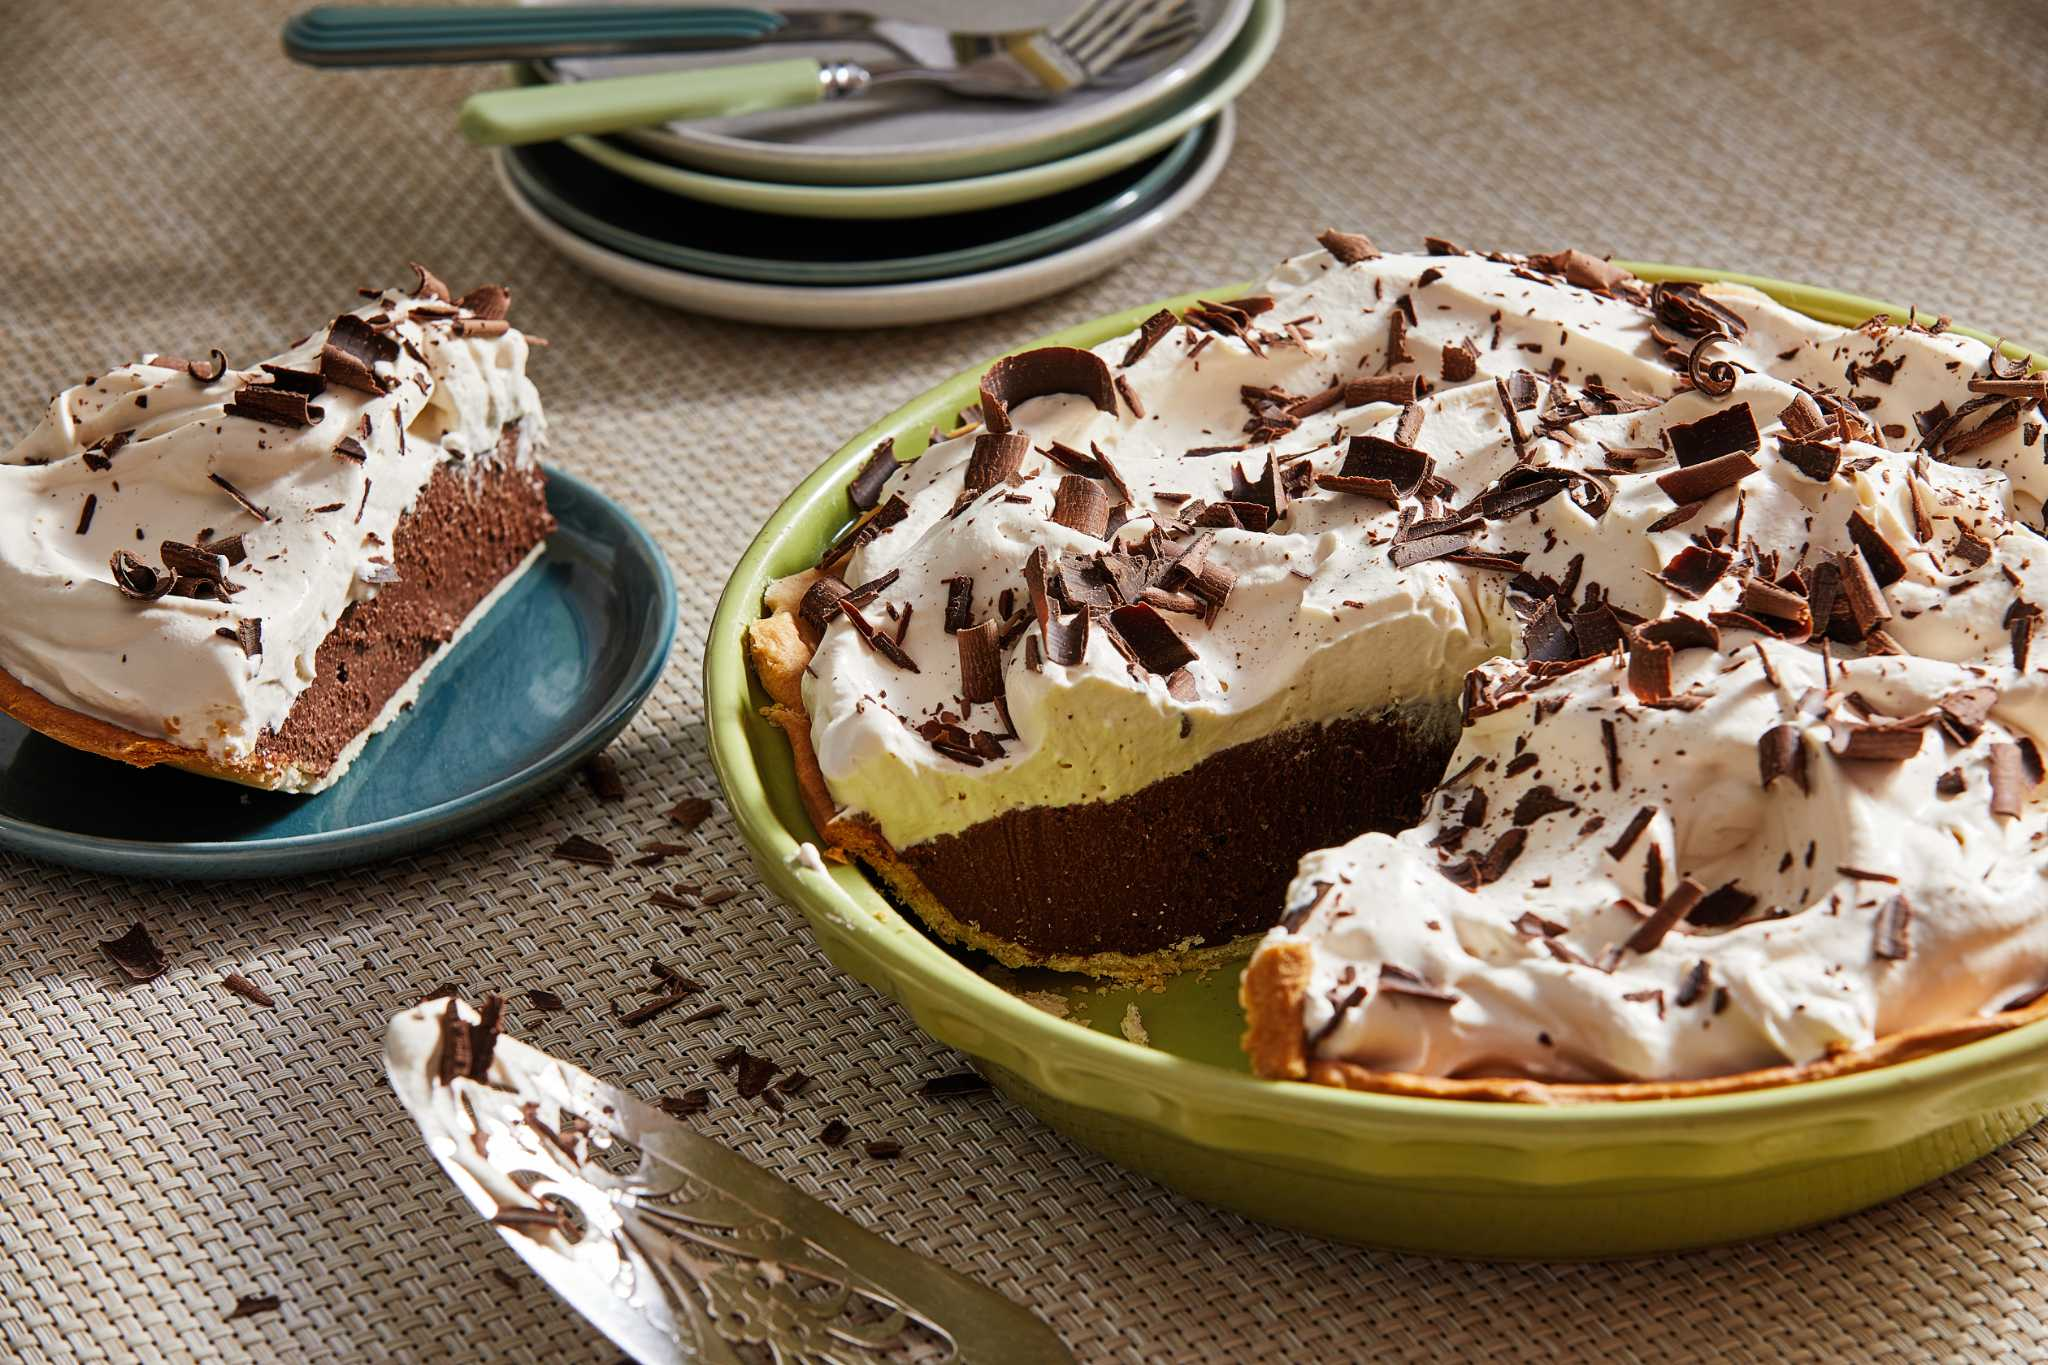 It took years of searching (and some terrible slices) to get to a chocolate pie we all deserve